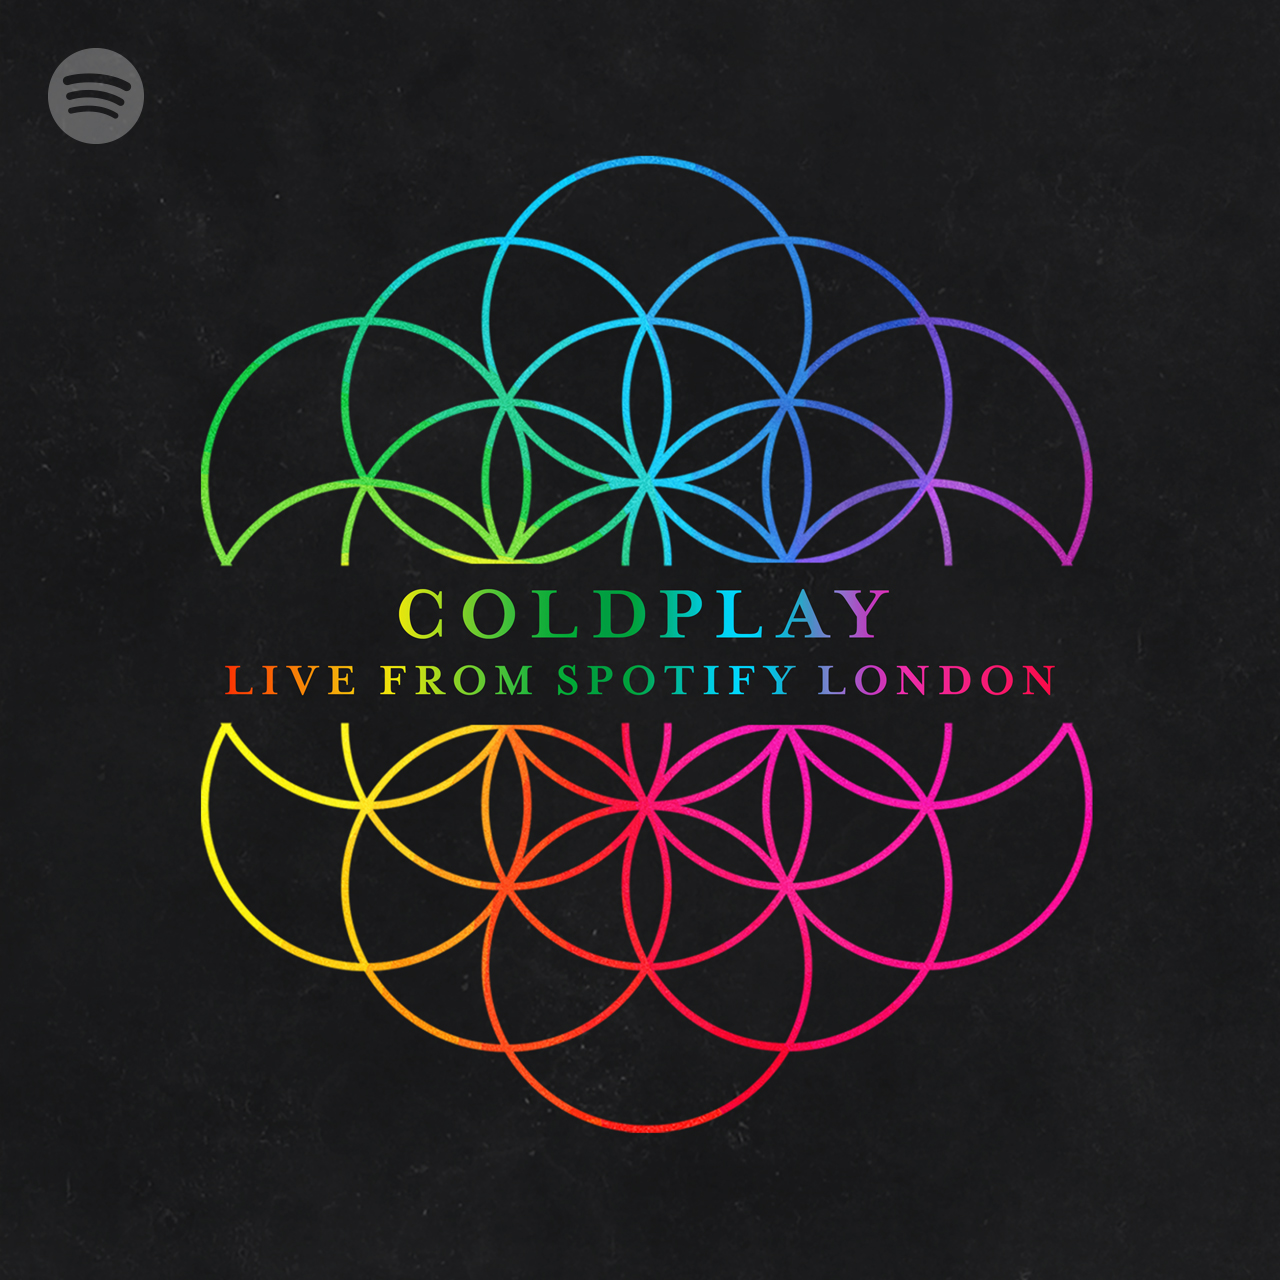 coldplay discography torrent